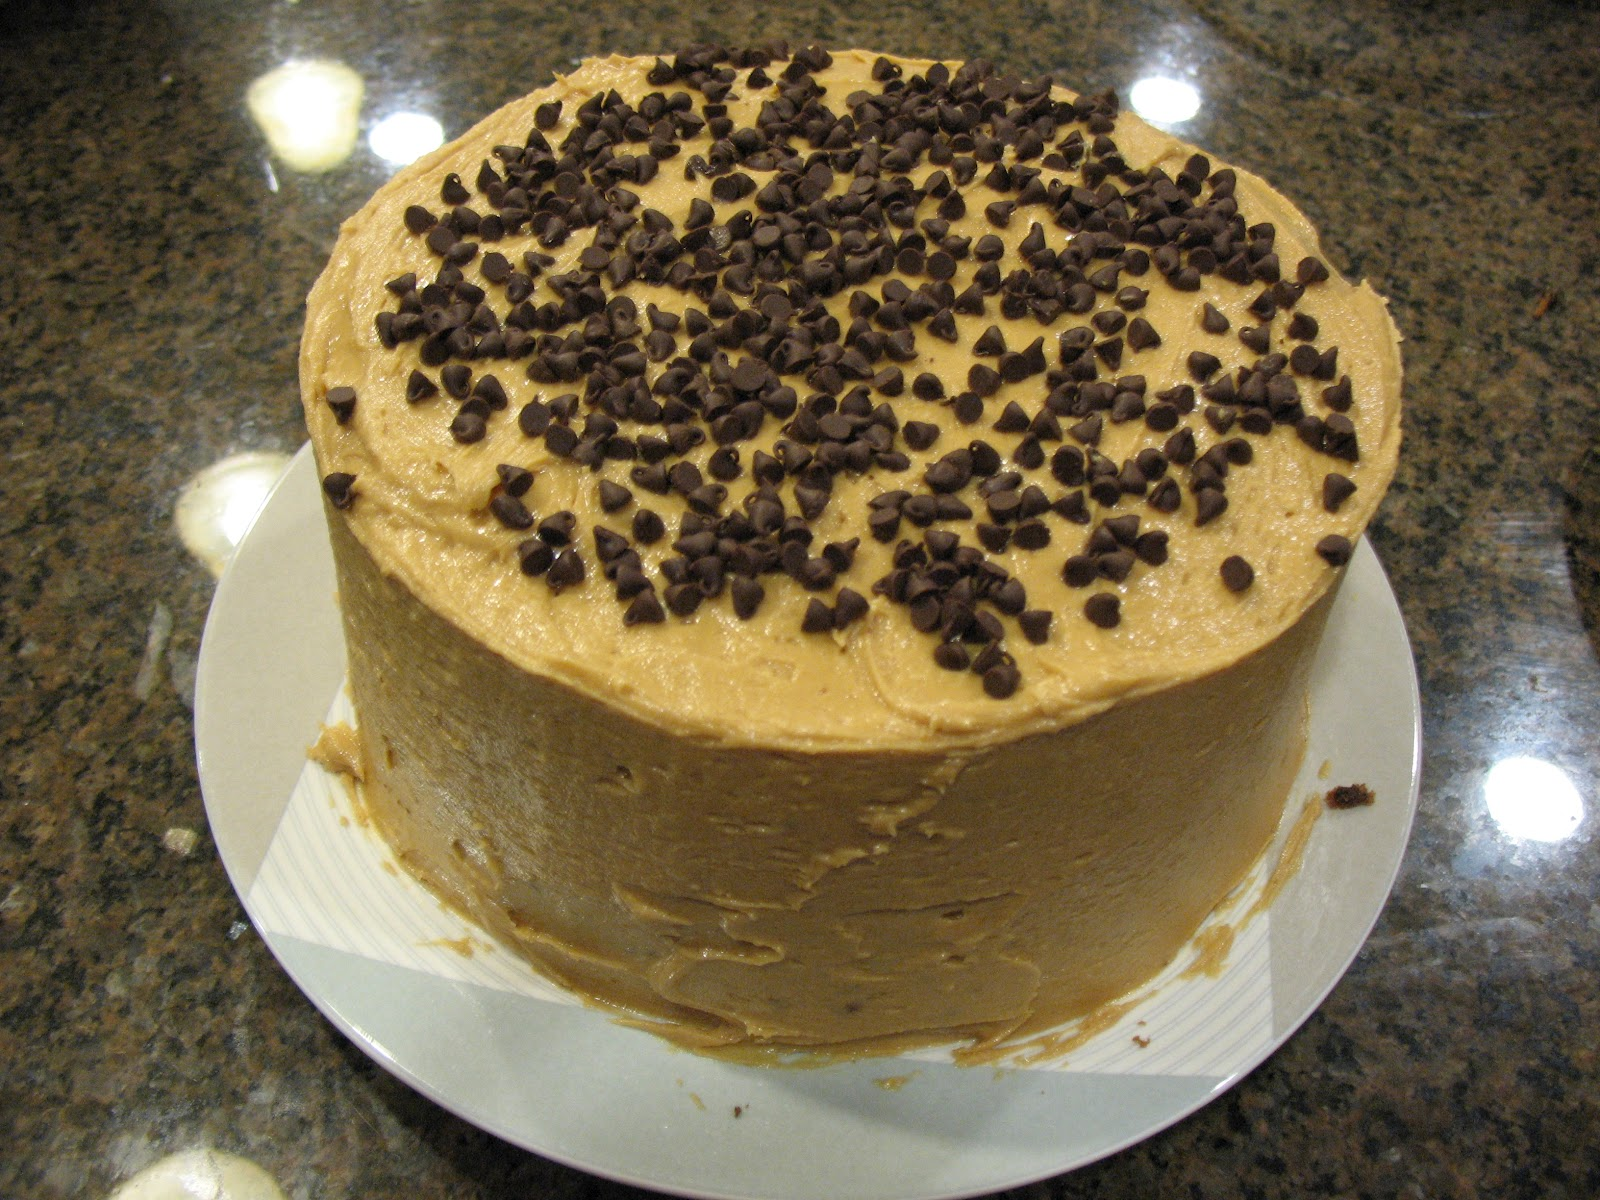 ... Cake Yourself: Banana-Chocolate Chip Cake with Peanut Butter Frosting